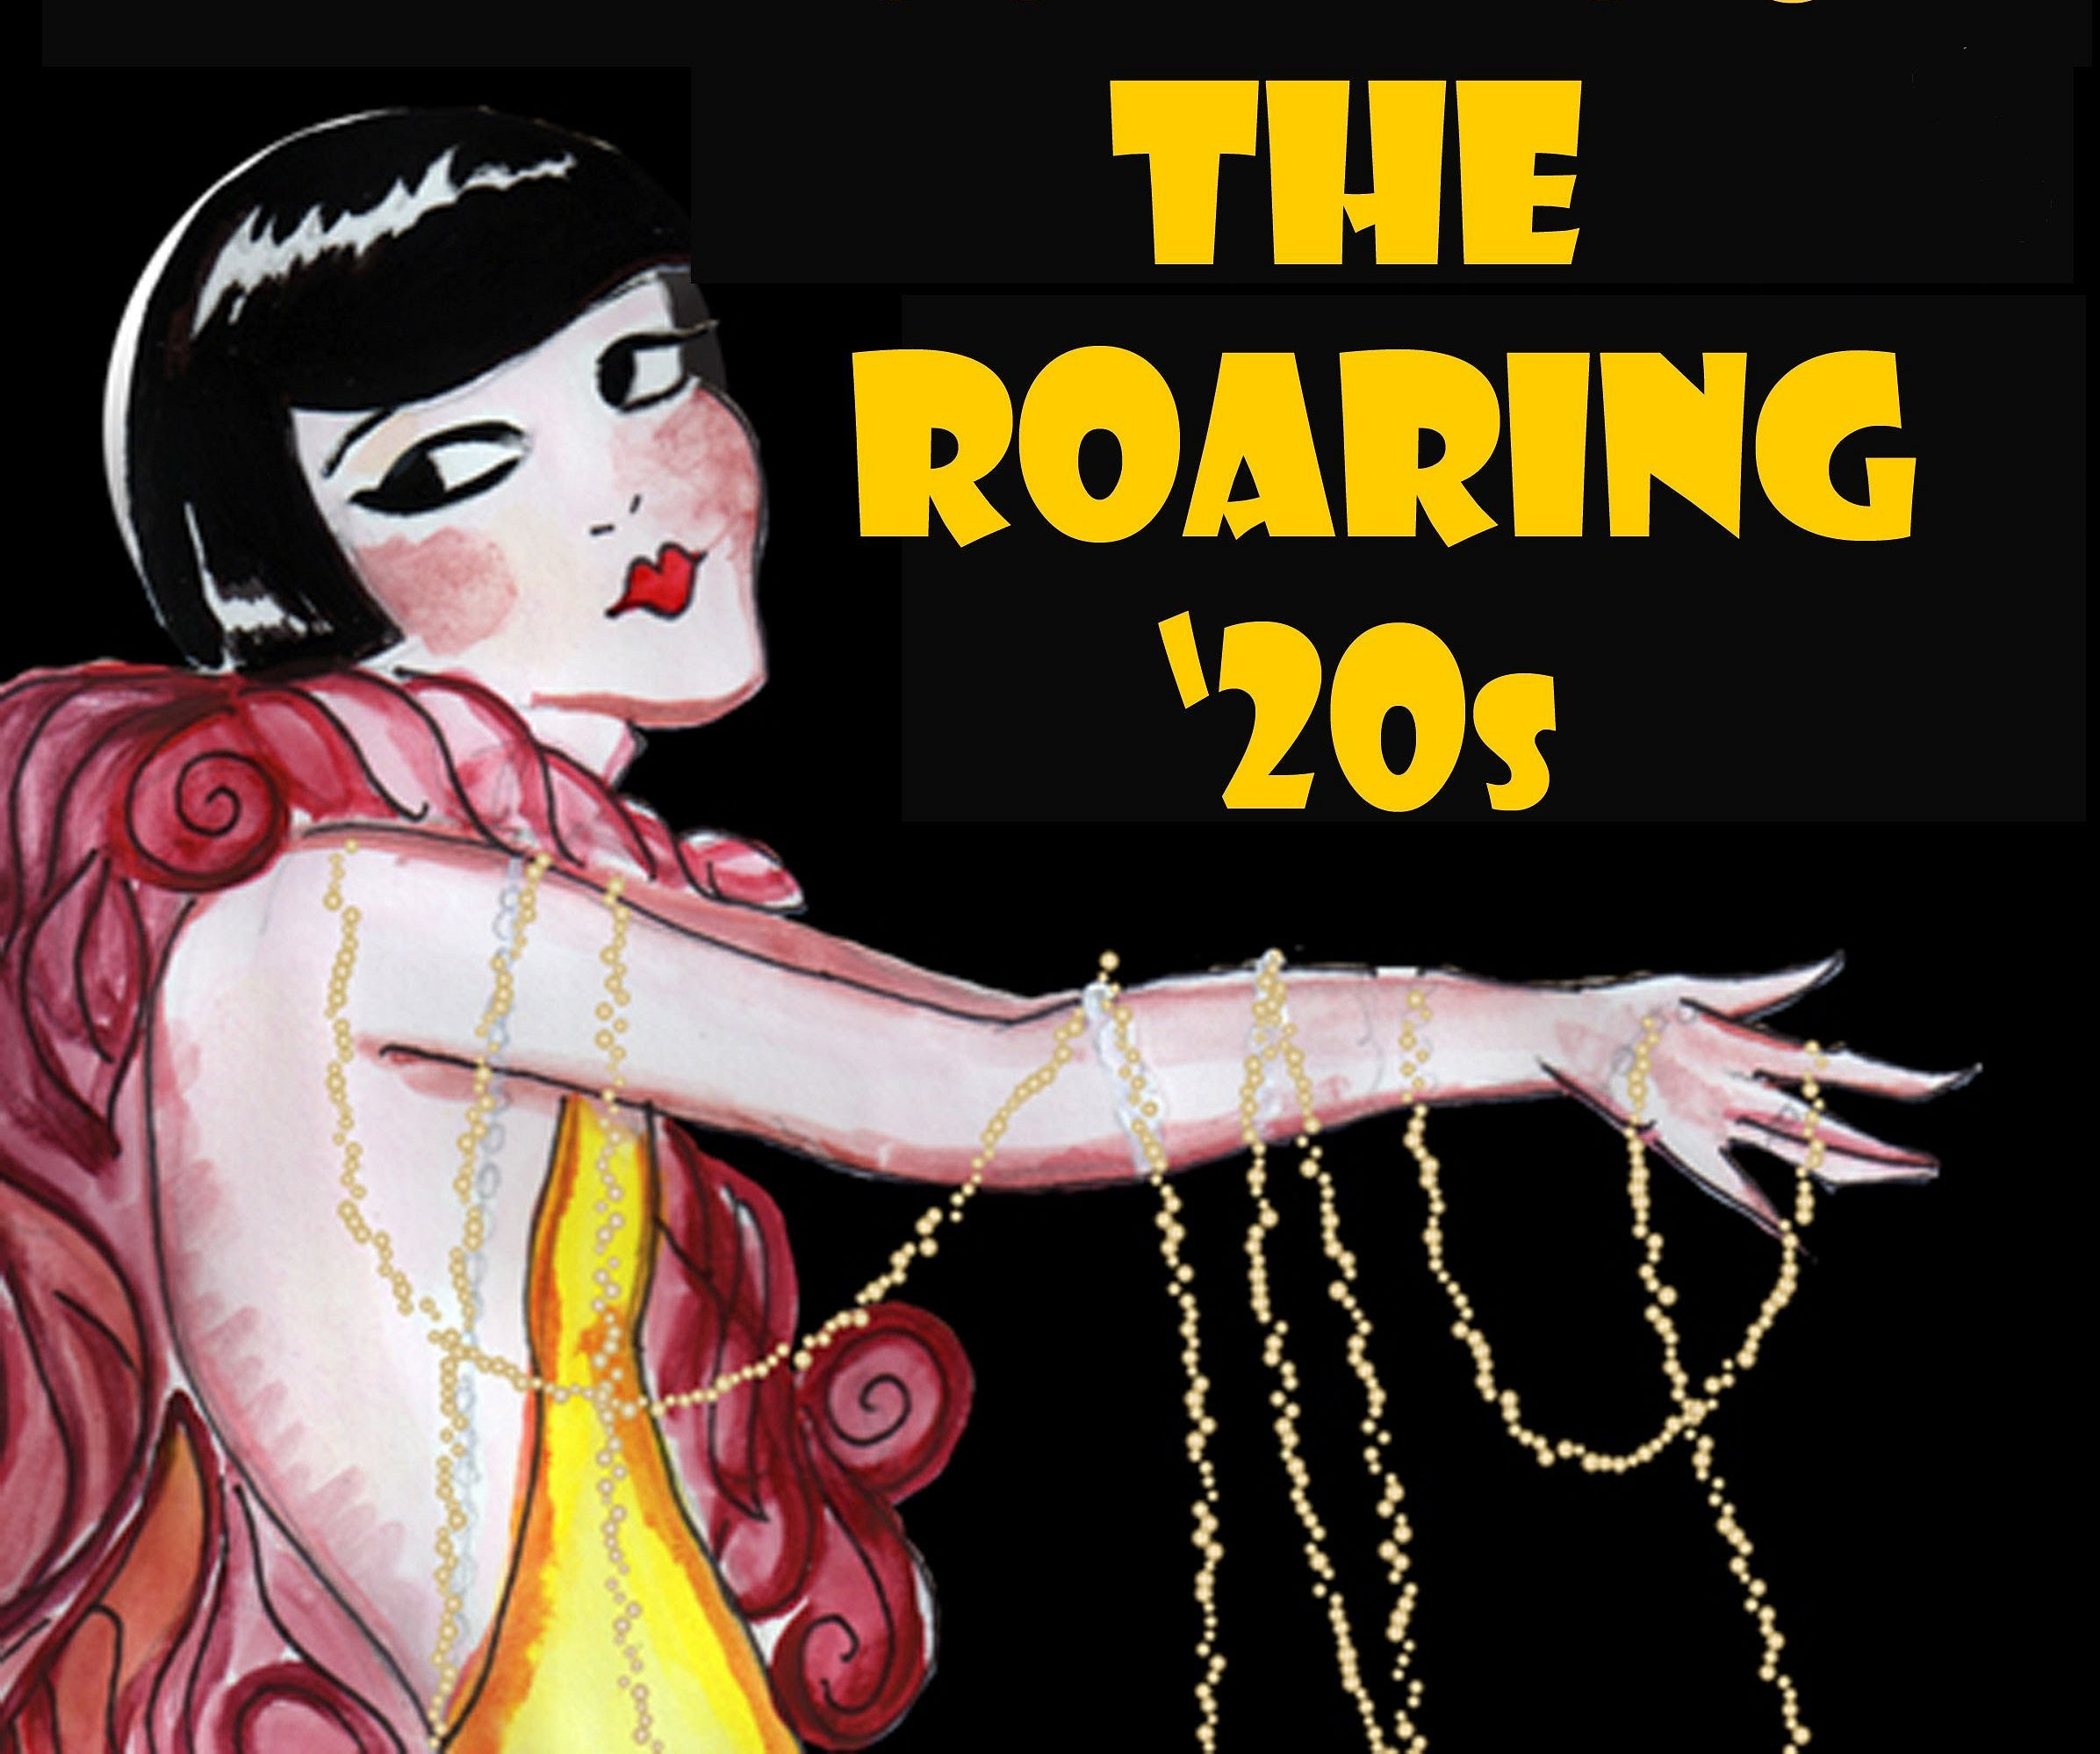 The Roaring Twenties Google image adapted from https://i.ytimg.com/vi/z3qxyHNA5Cs/maxresdefault.jpg